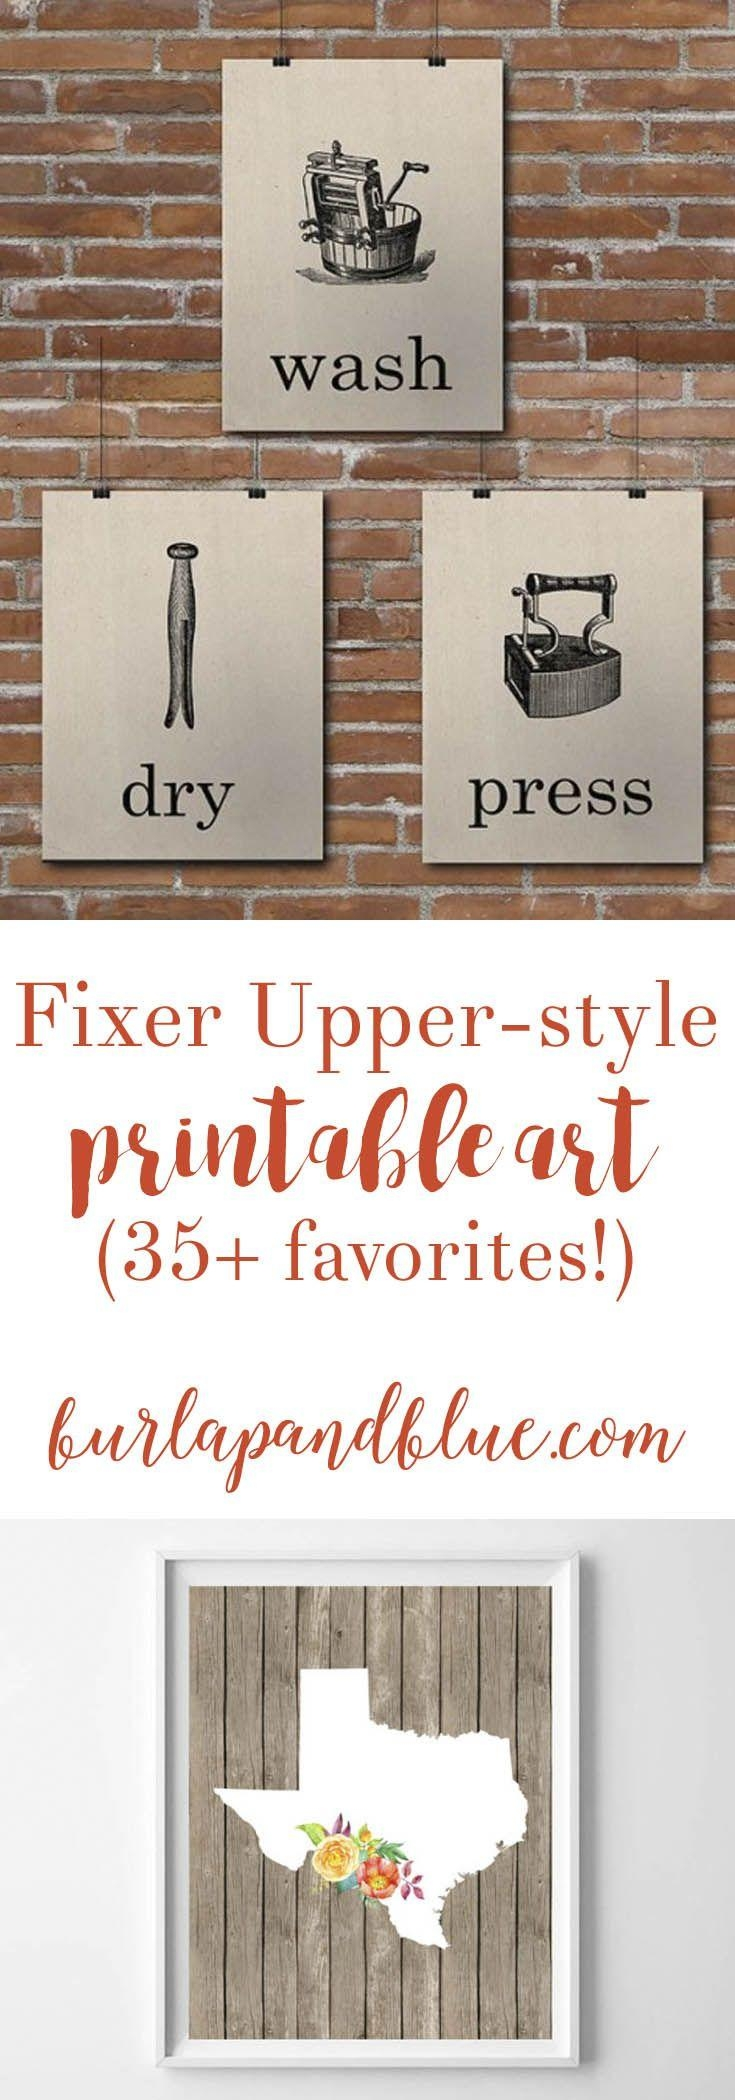 Best 25+ Laundry Room Wall Decor Ideas Only On Pinterest   Laundry Inside Laundry Room Wall Art Decors (Image 6 of 20)